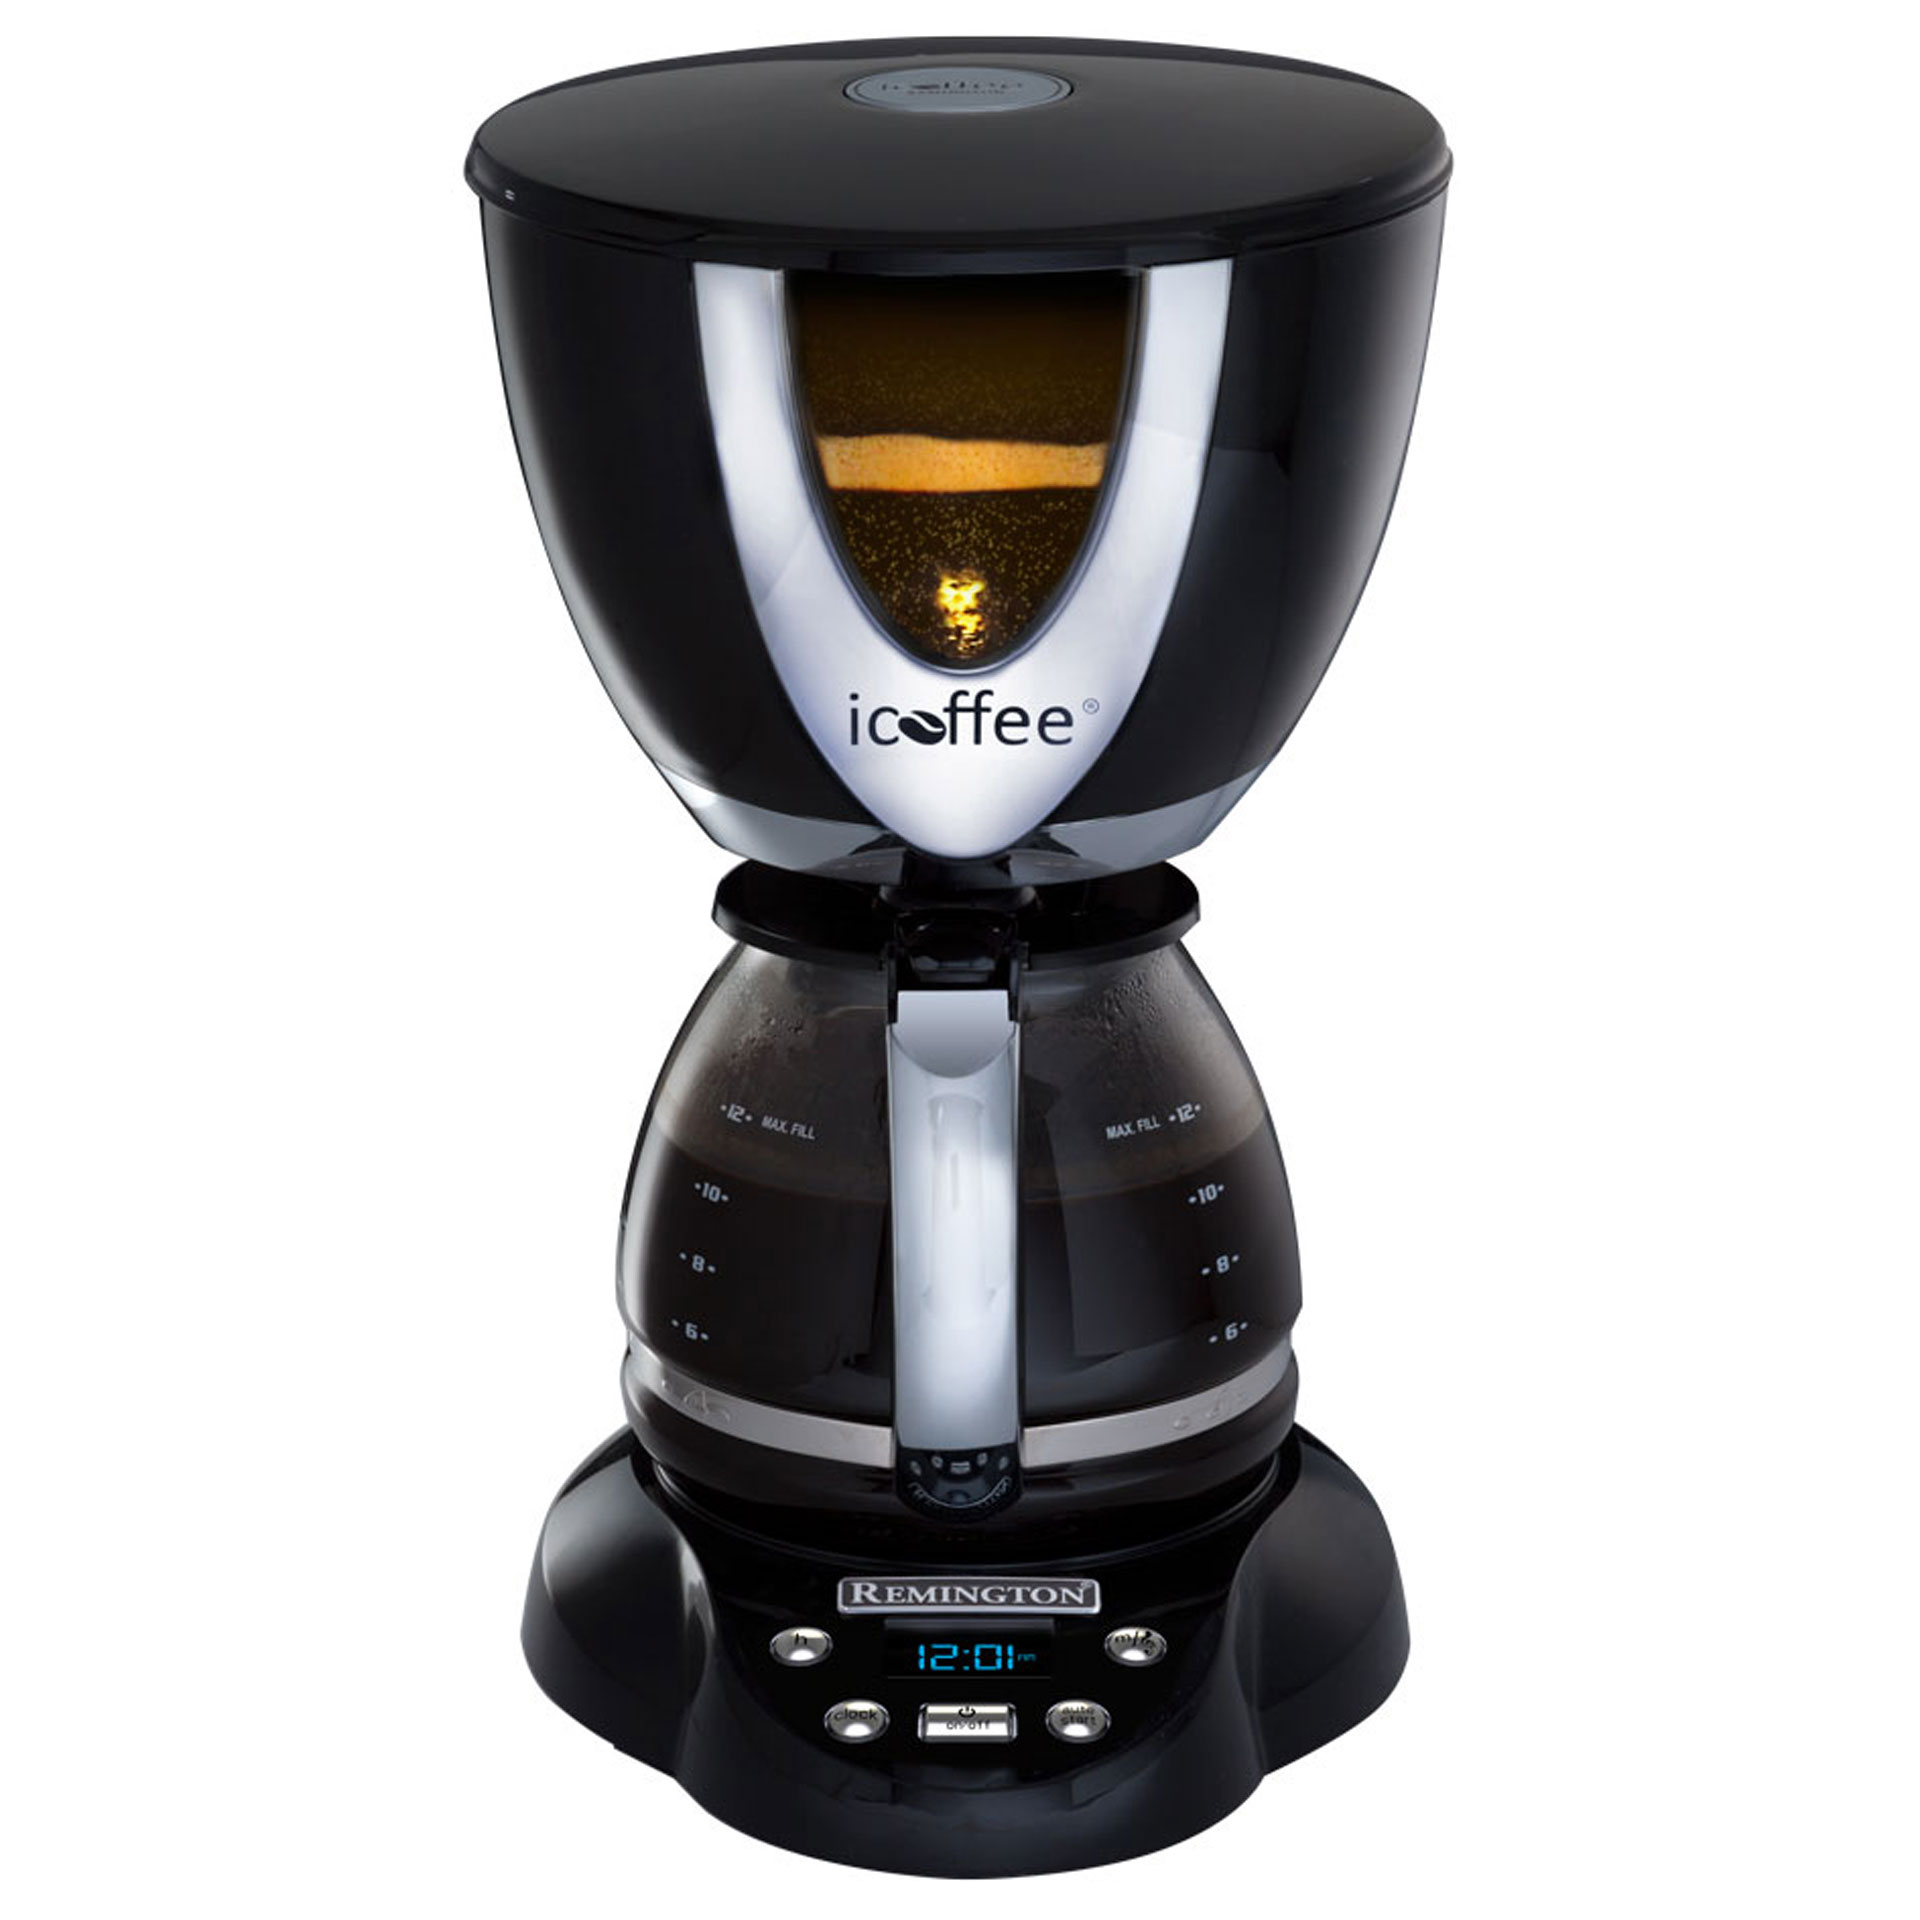 Icoffee Electric Coffee Maker : iCoffee by Remington SteamBrew Coffeemaker #67525 Review